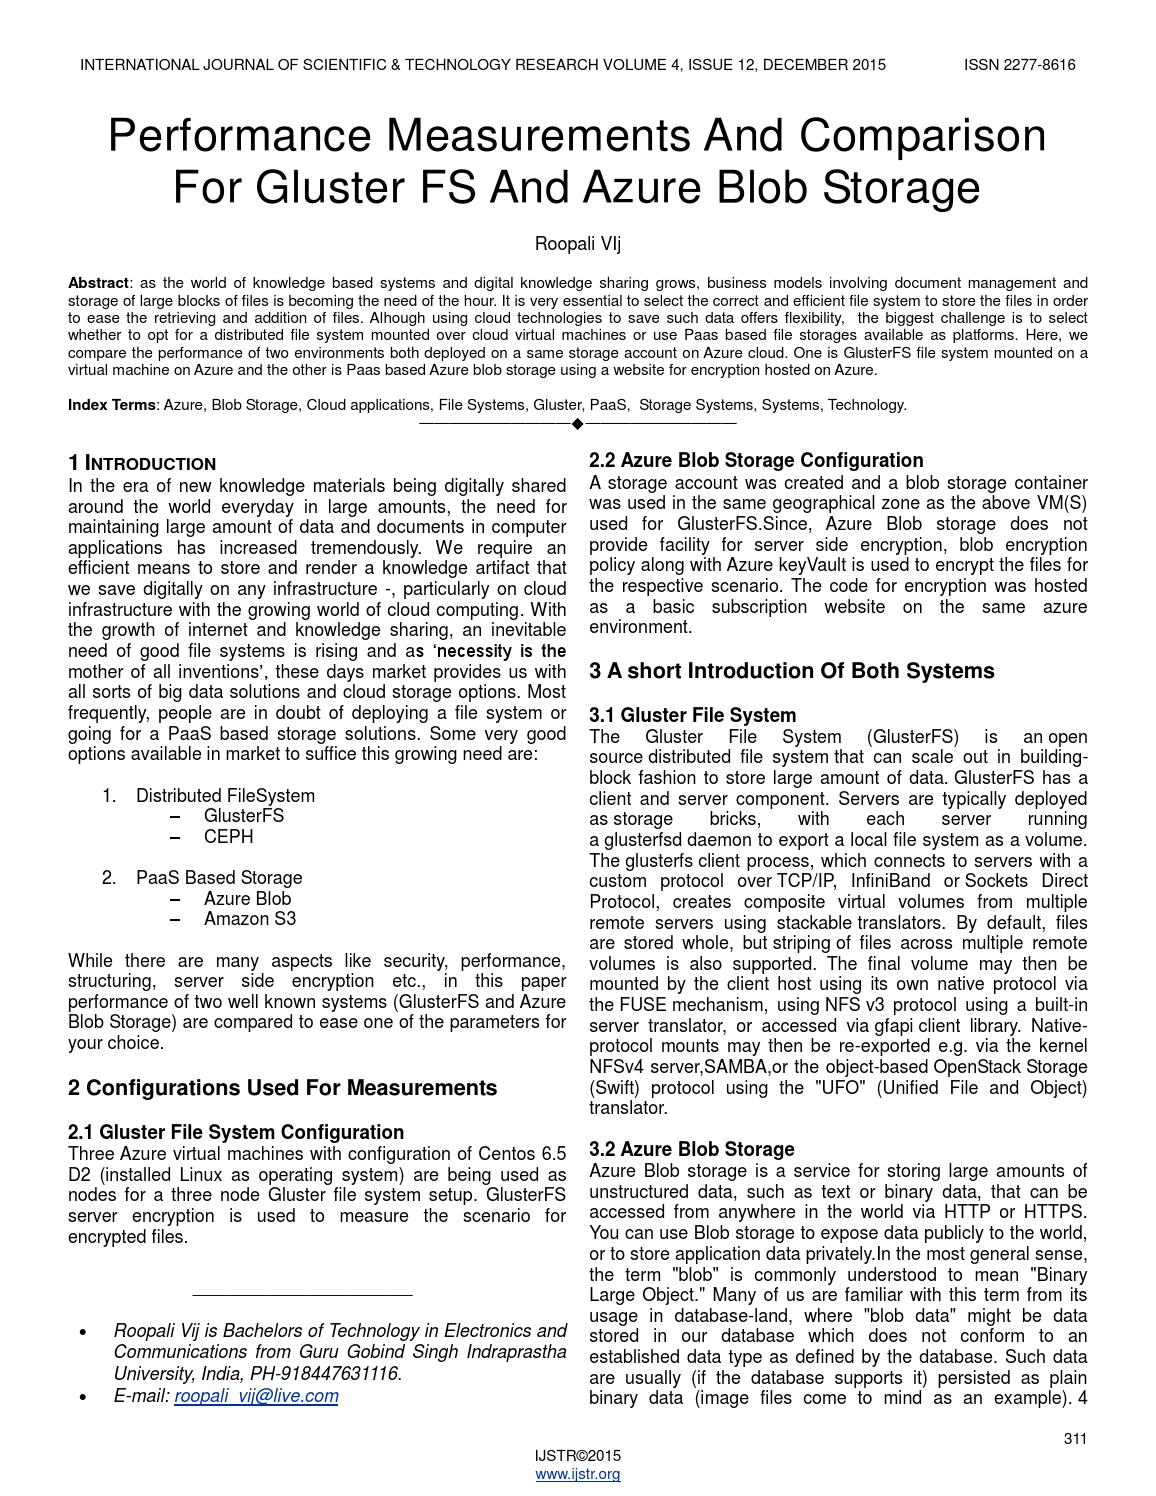 Performance measurements and comparison for gluster fs and